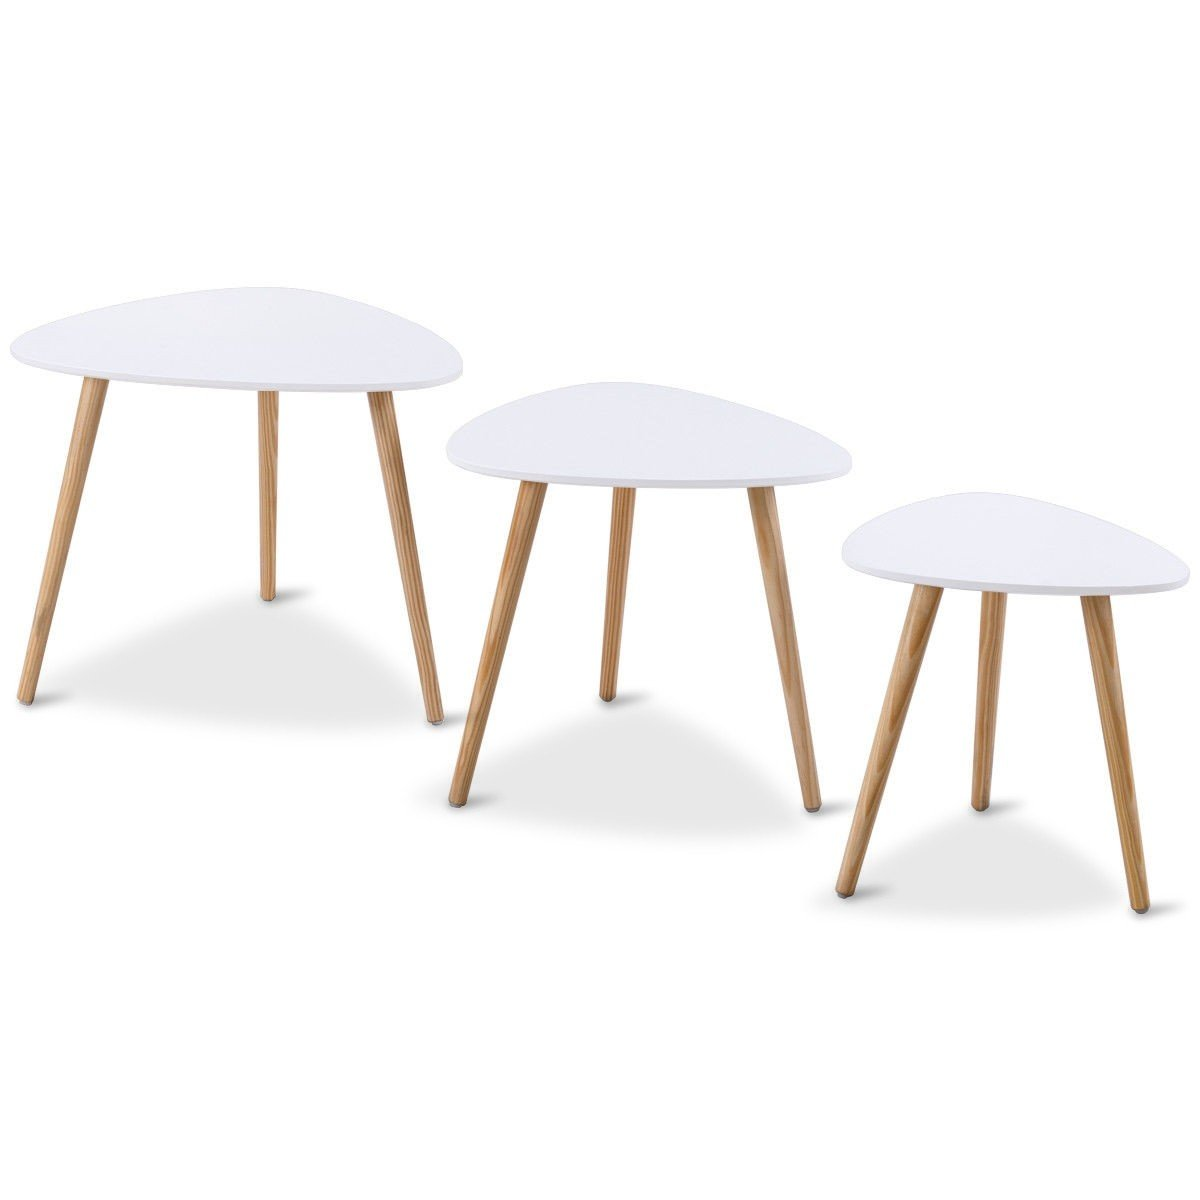 Set of 3 Wood Nesting Accent End Coffee Tea Table - By Choice Products